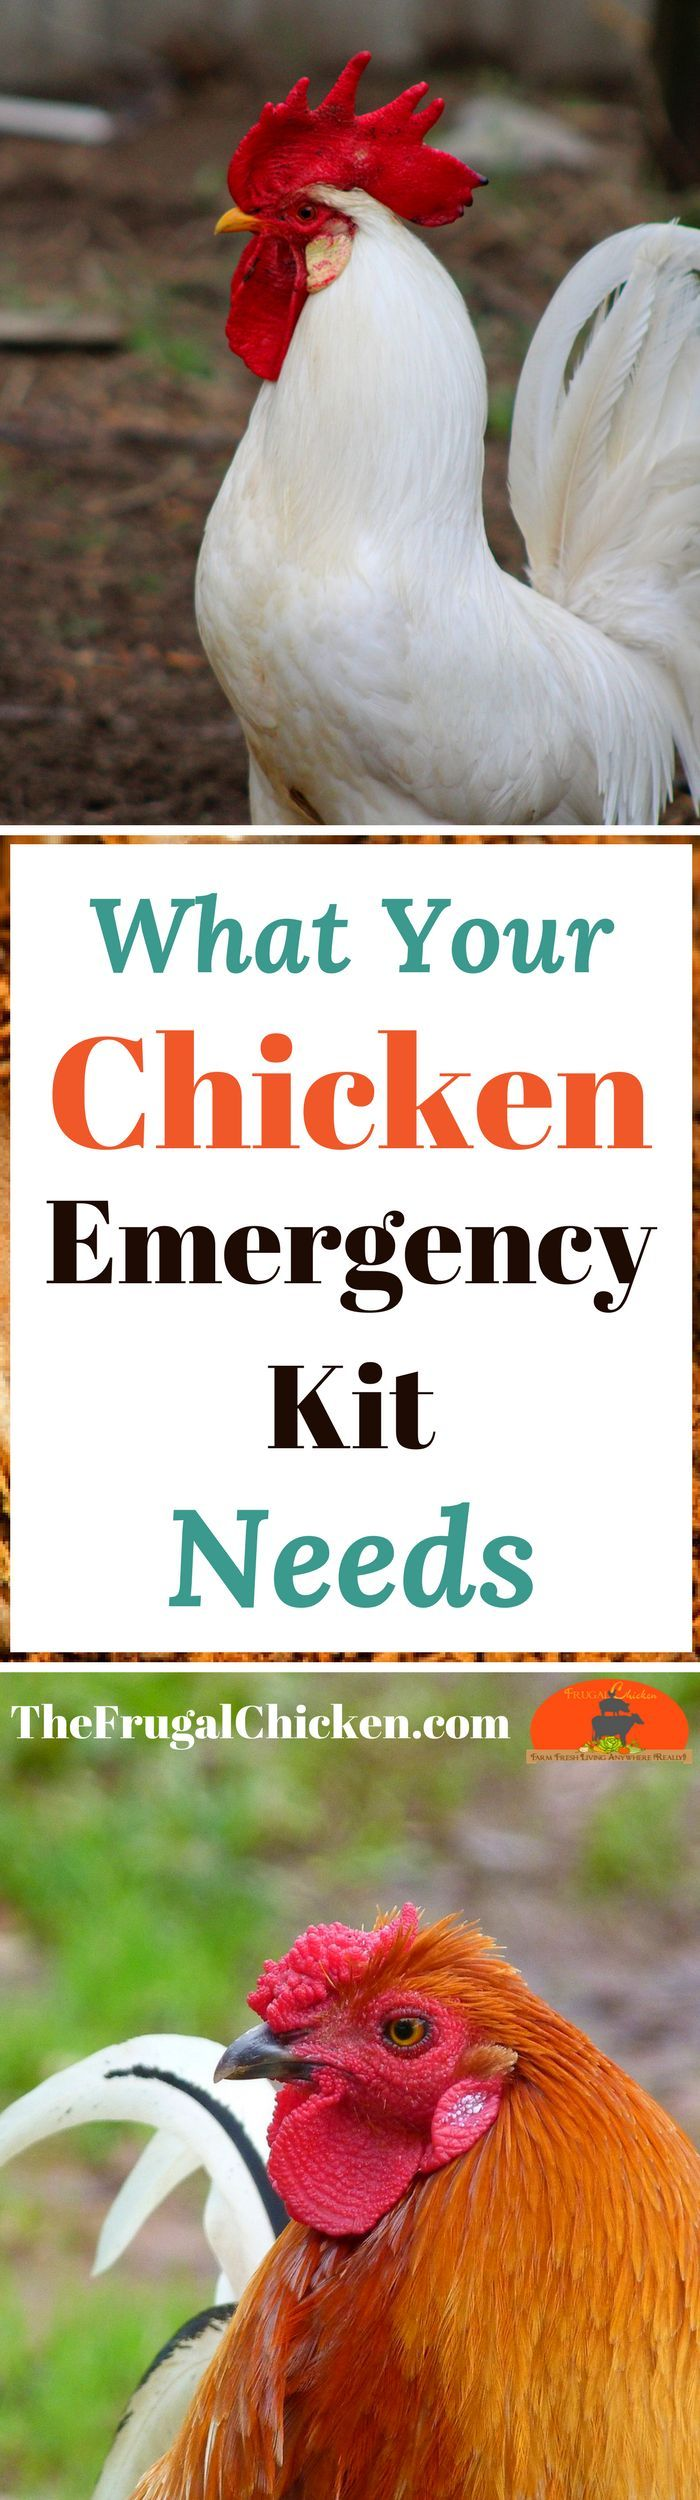 If you have chickens, eventually they will need first aid! Here's the items you should ALWAYS have in your backyard chicken emergency kit!